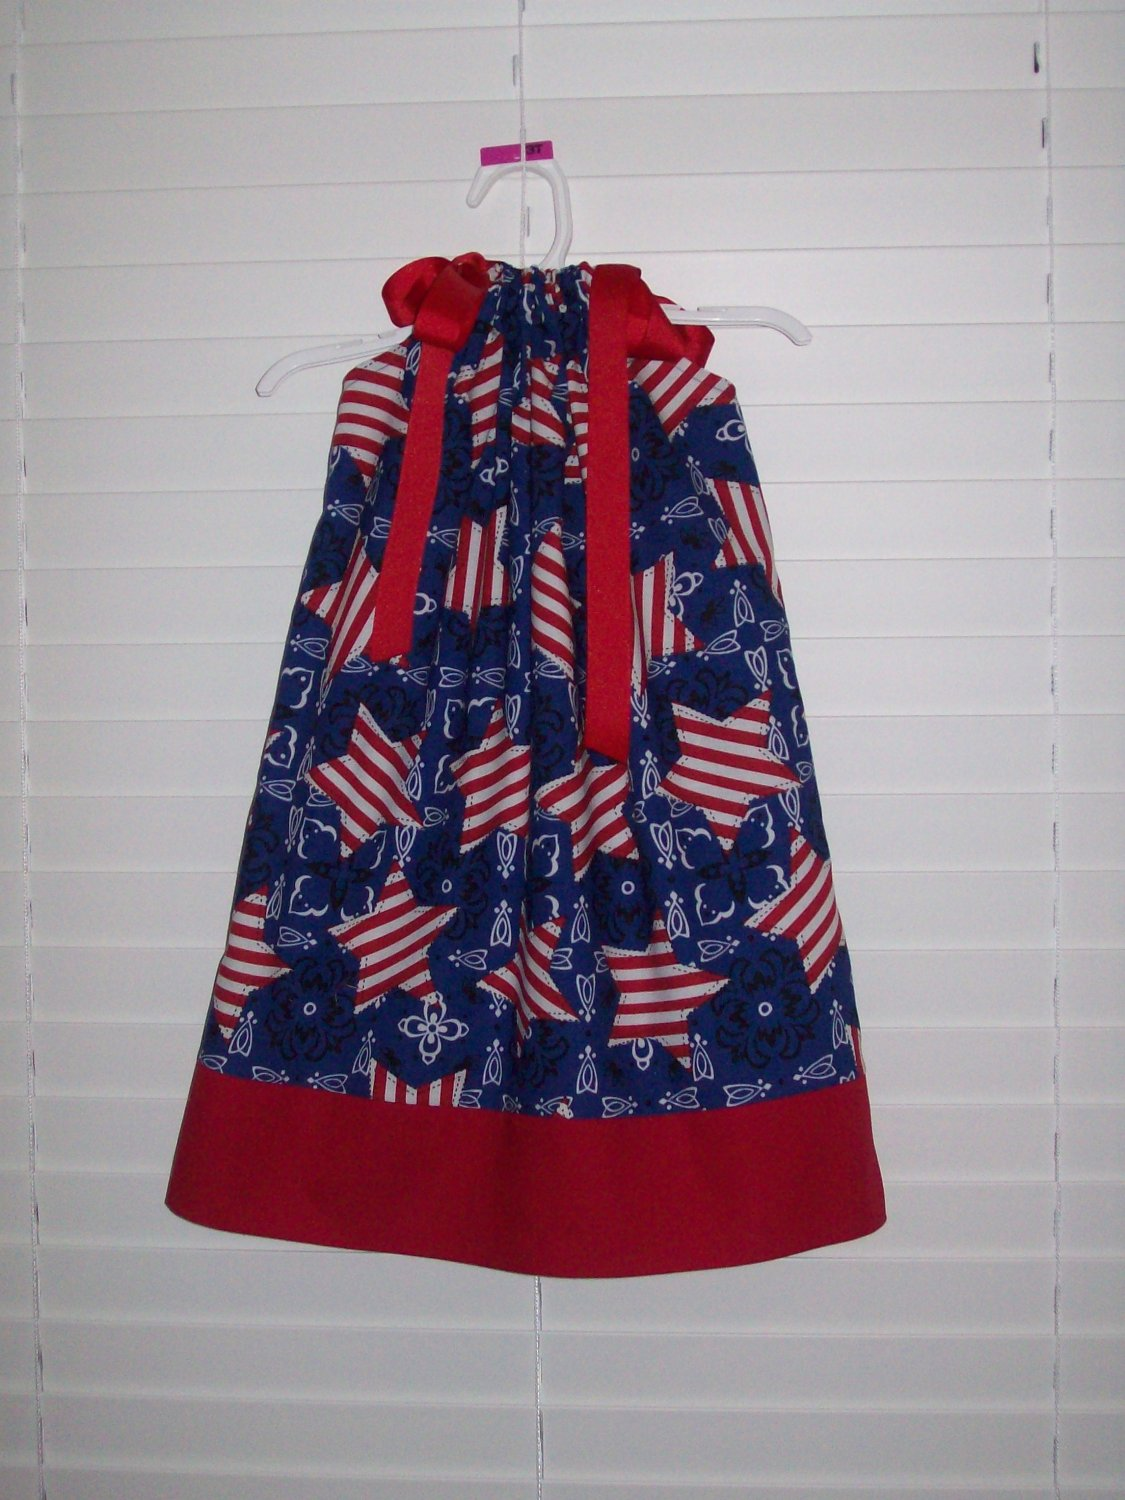 Patroitic 4th of July Pillowcase Dress